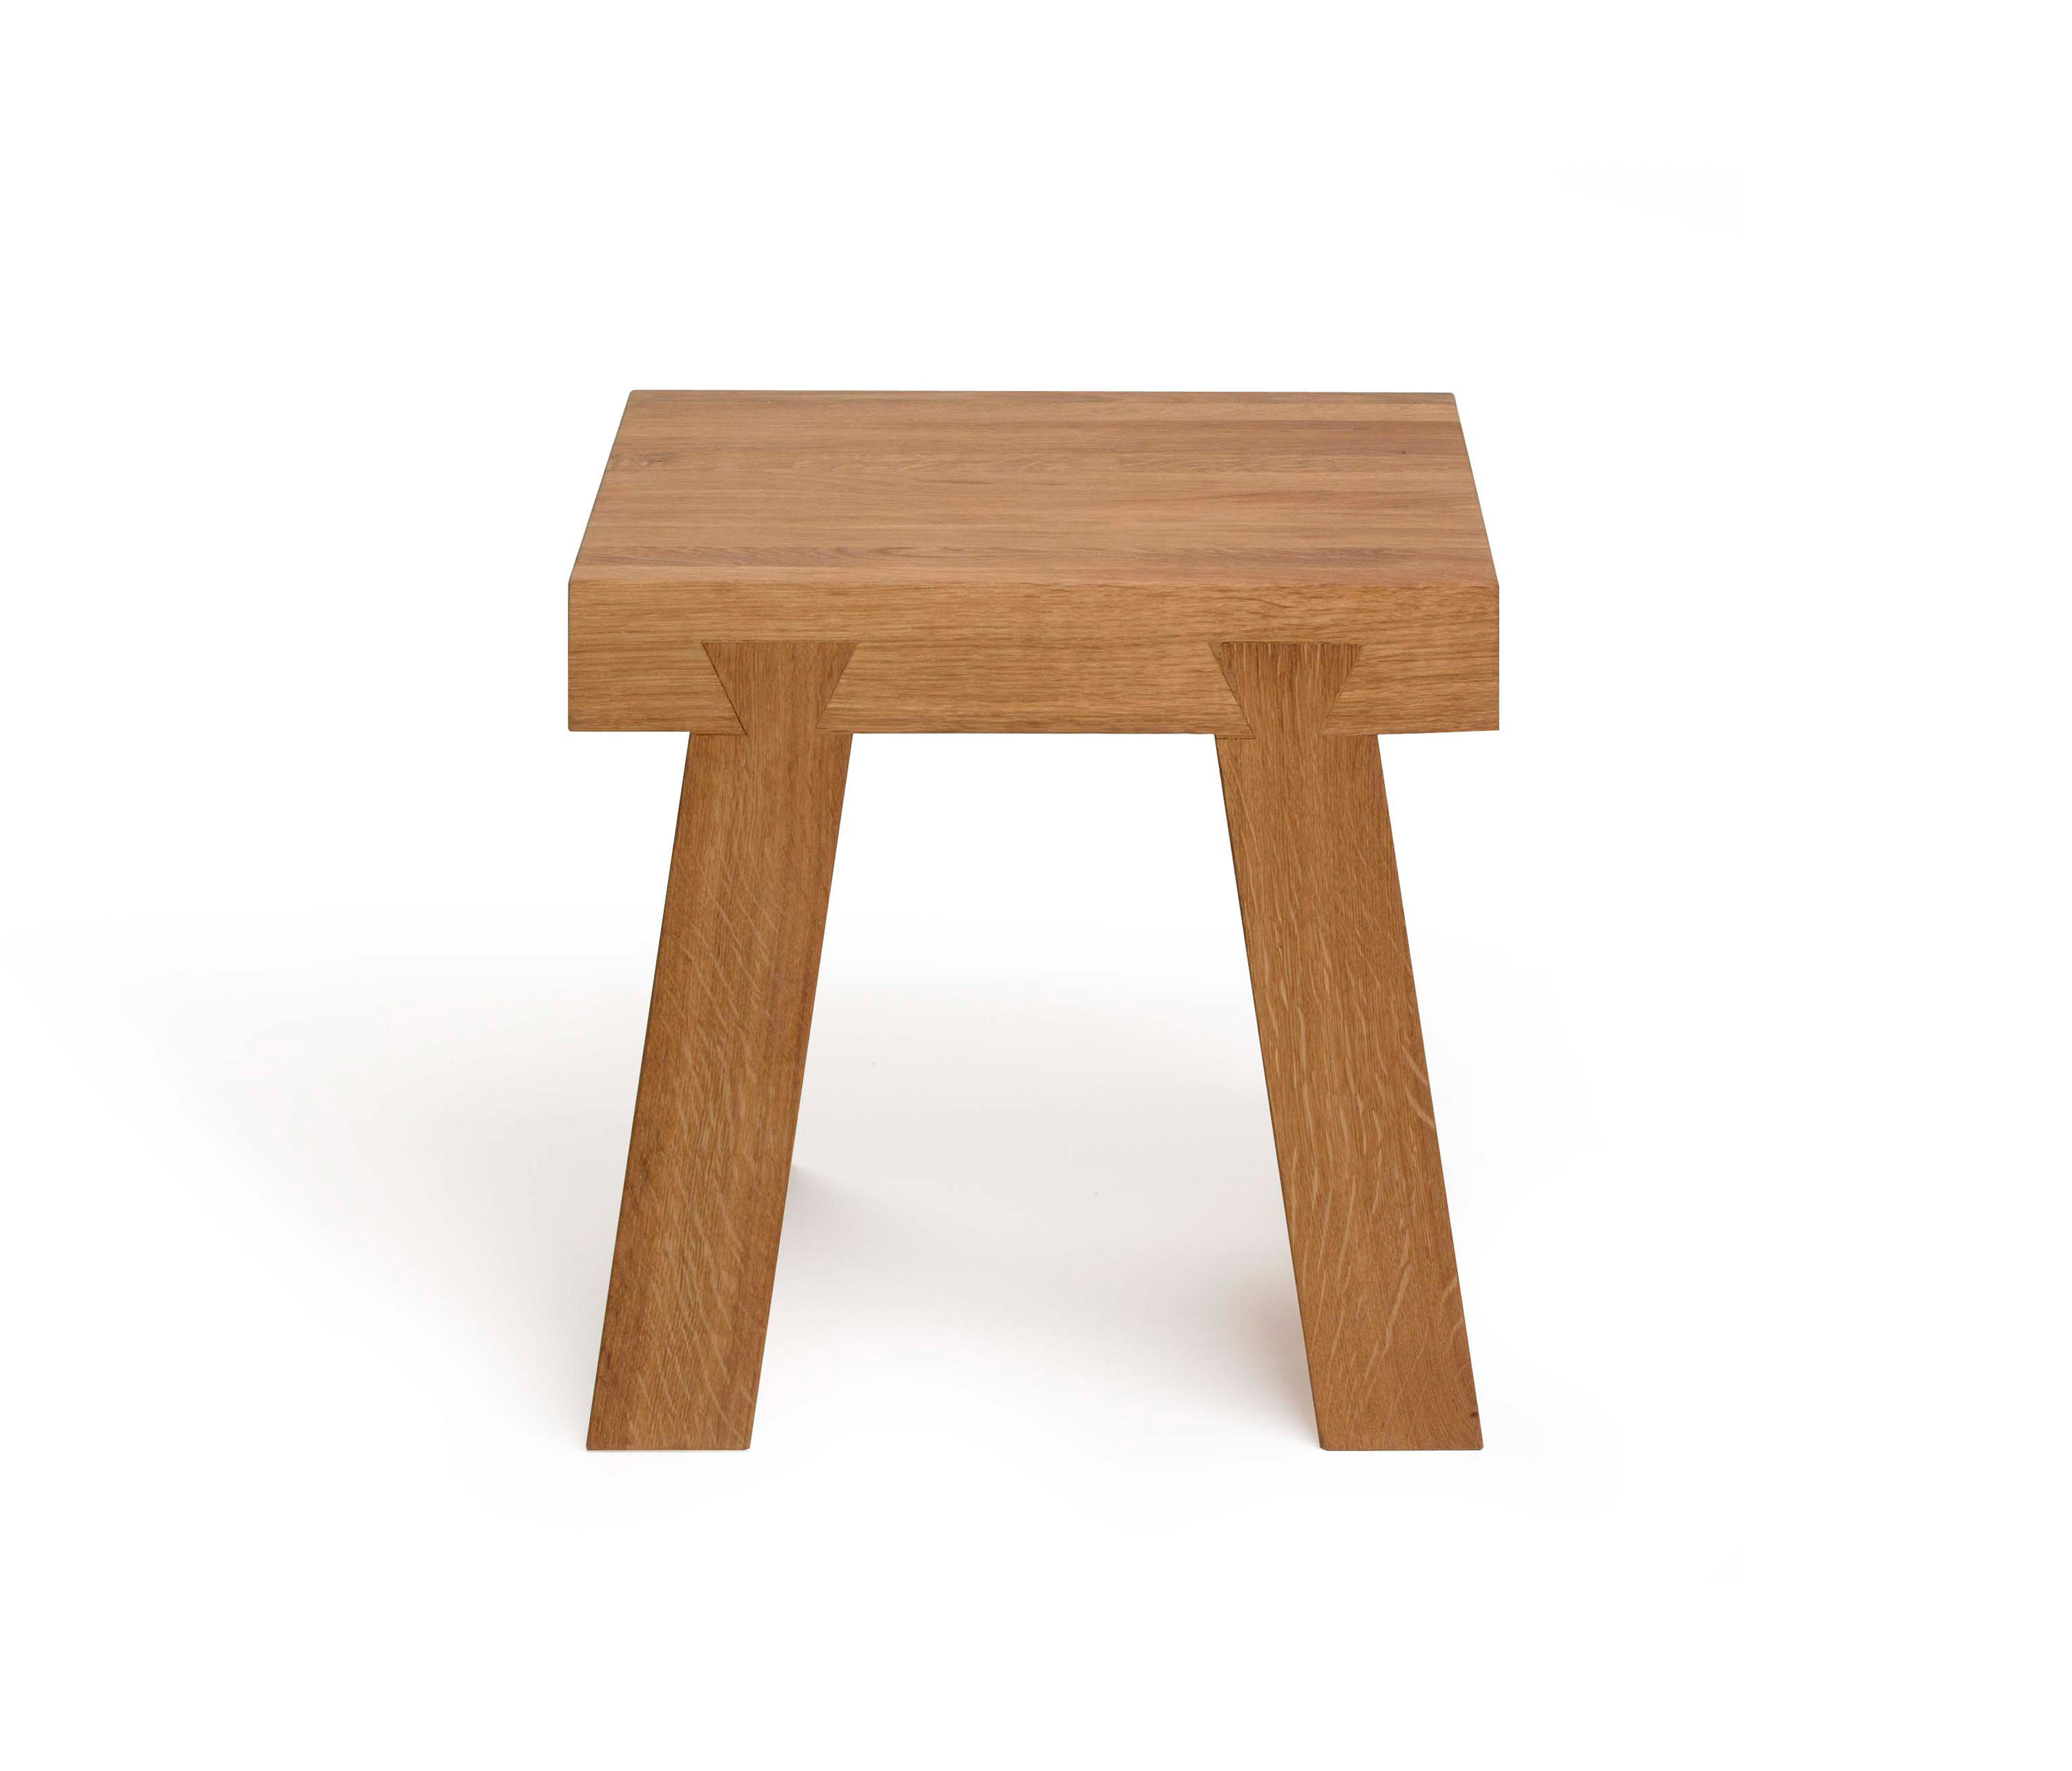 Small Square Table Coffee Table Oval Wooden With Tiny Drawers Sets Folding Table Small Square